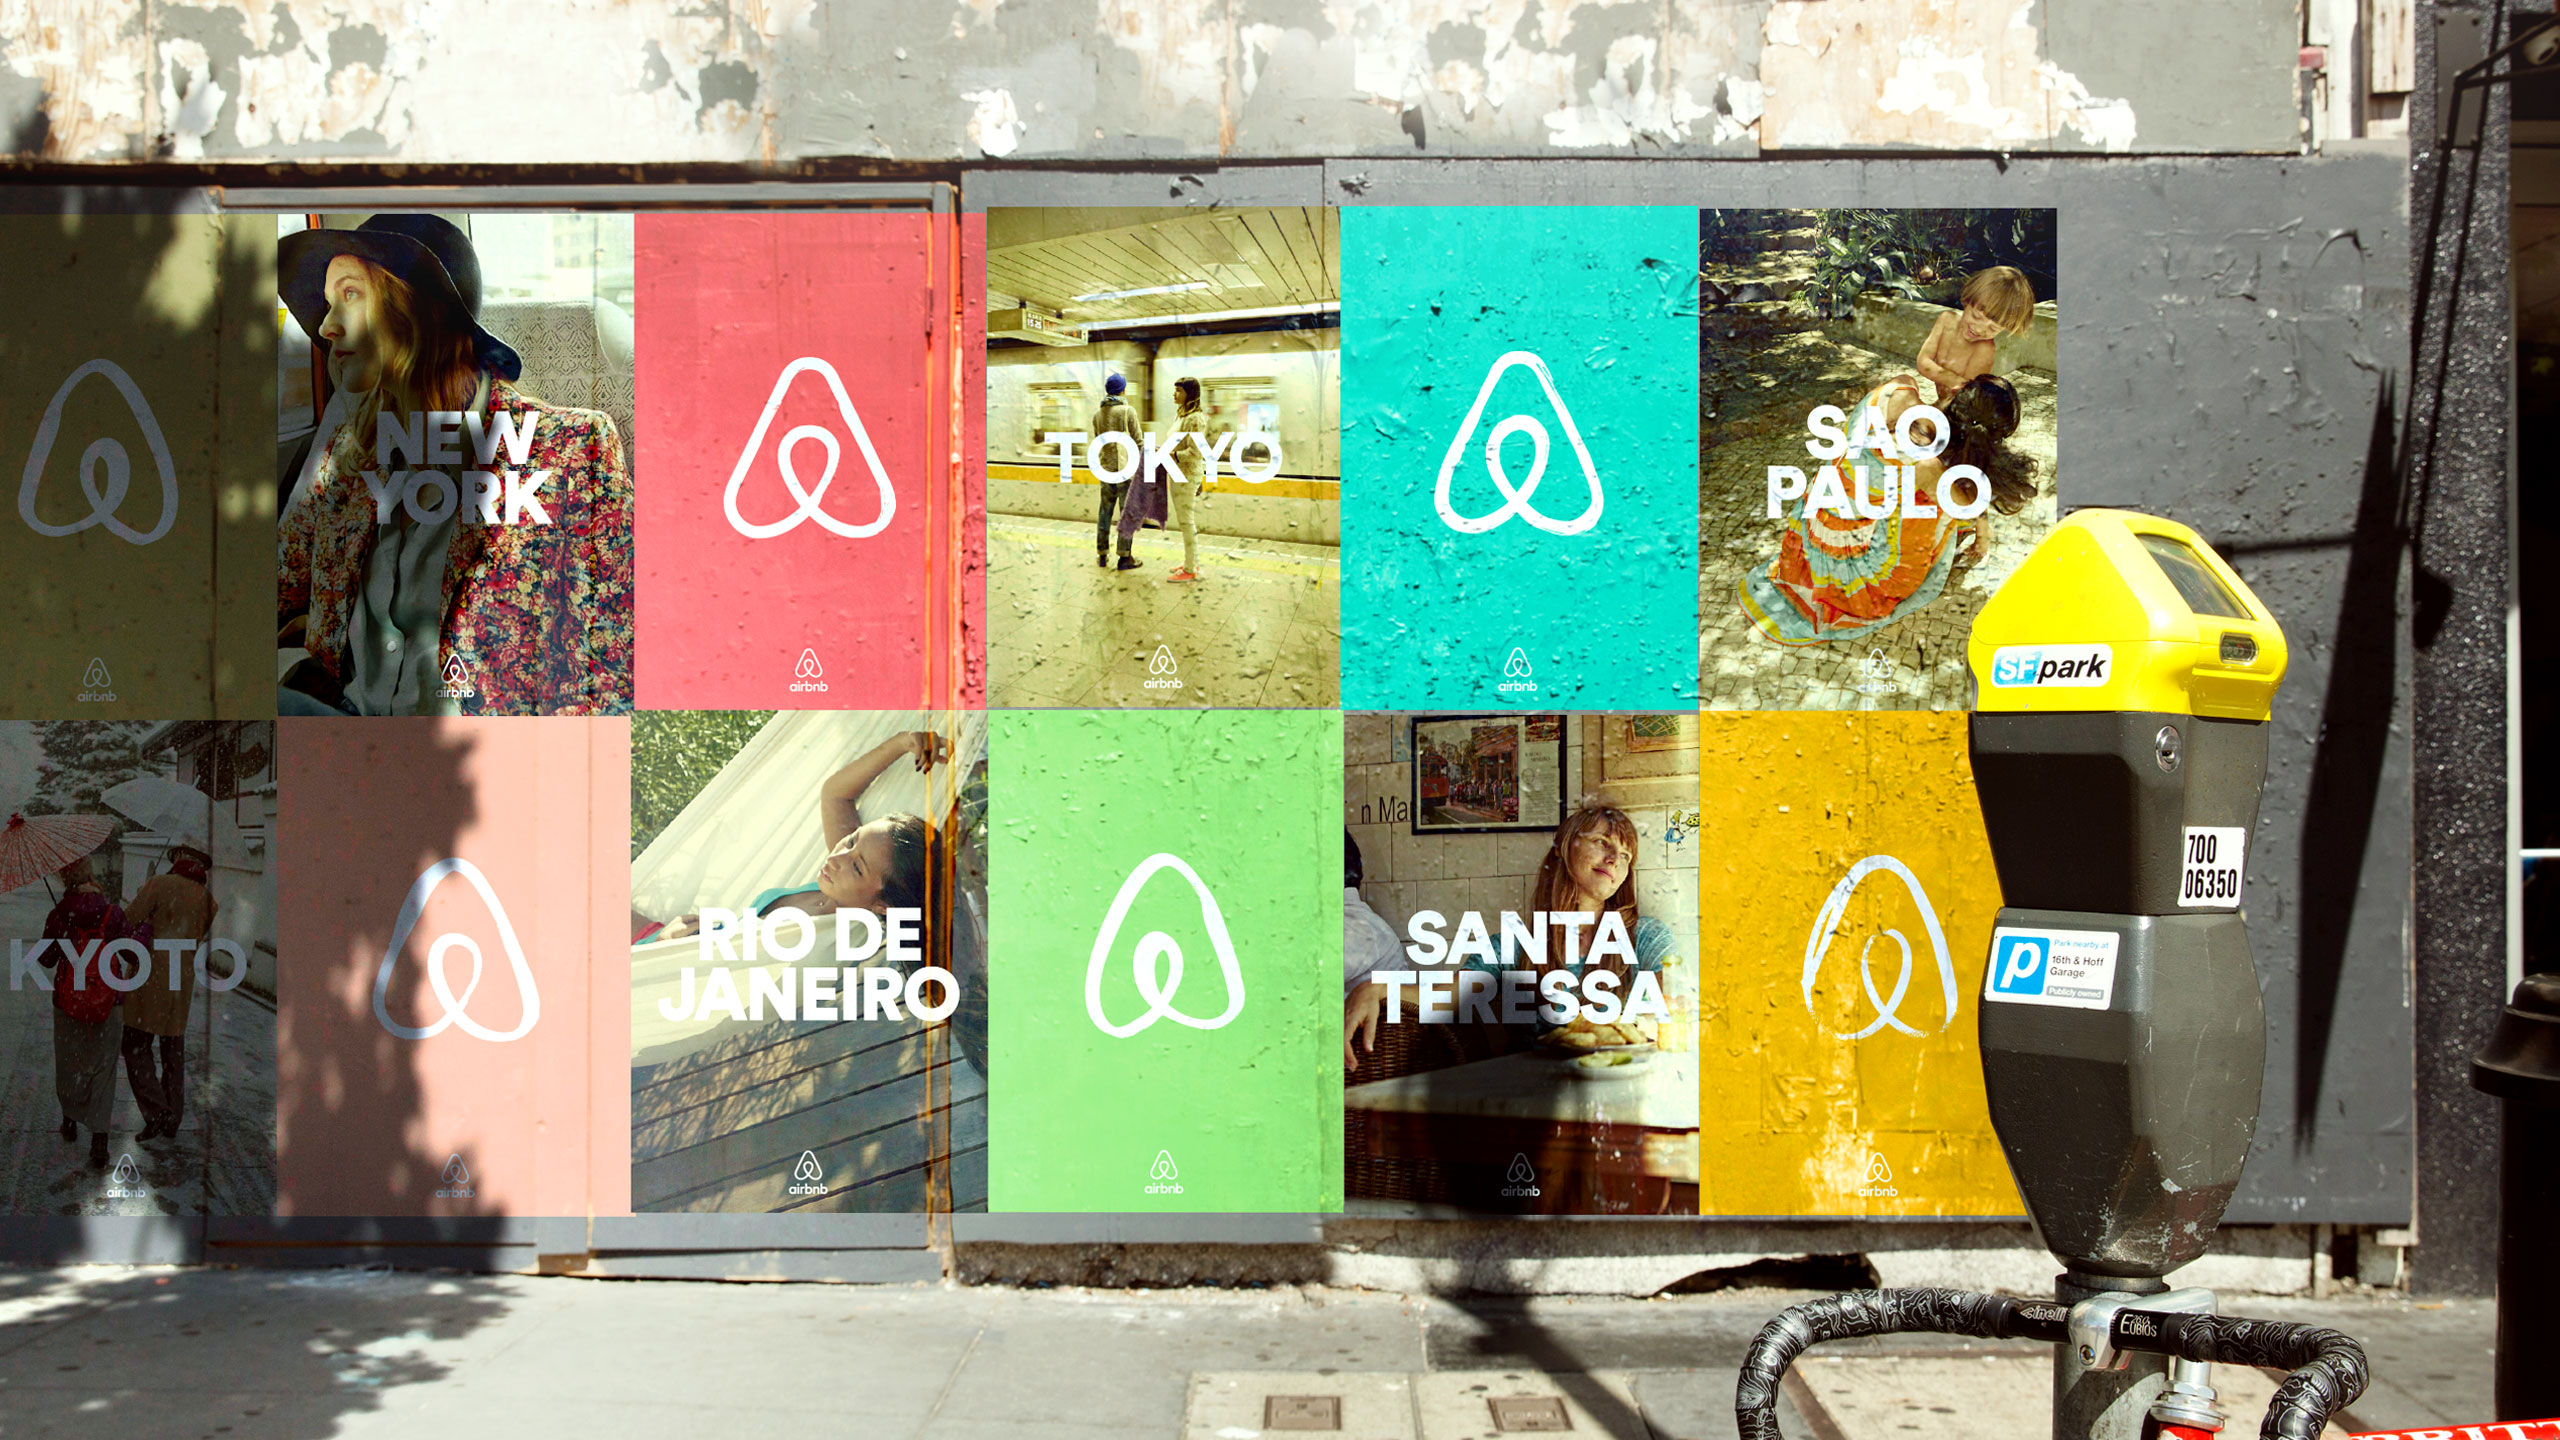 Airbnb wants to book your entire trip in the future